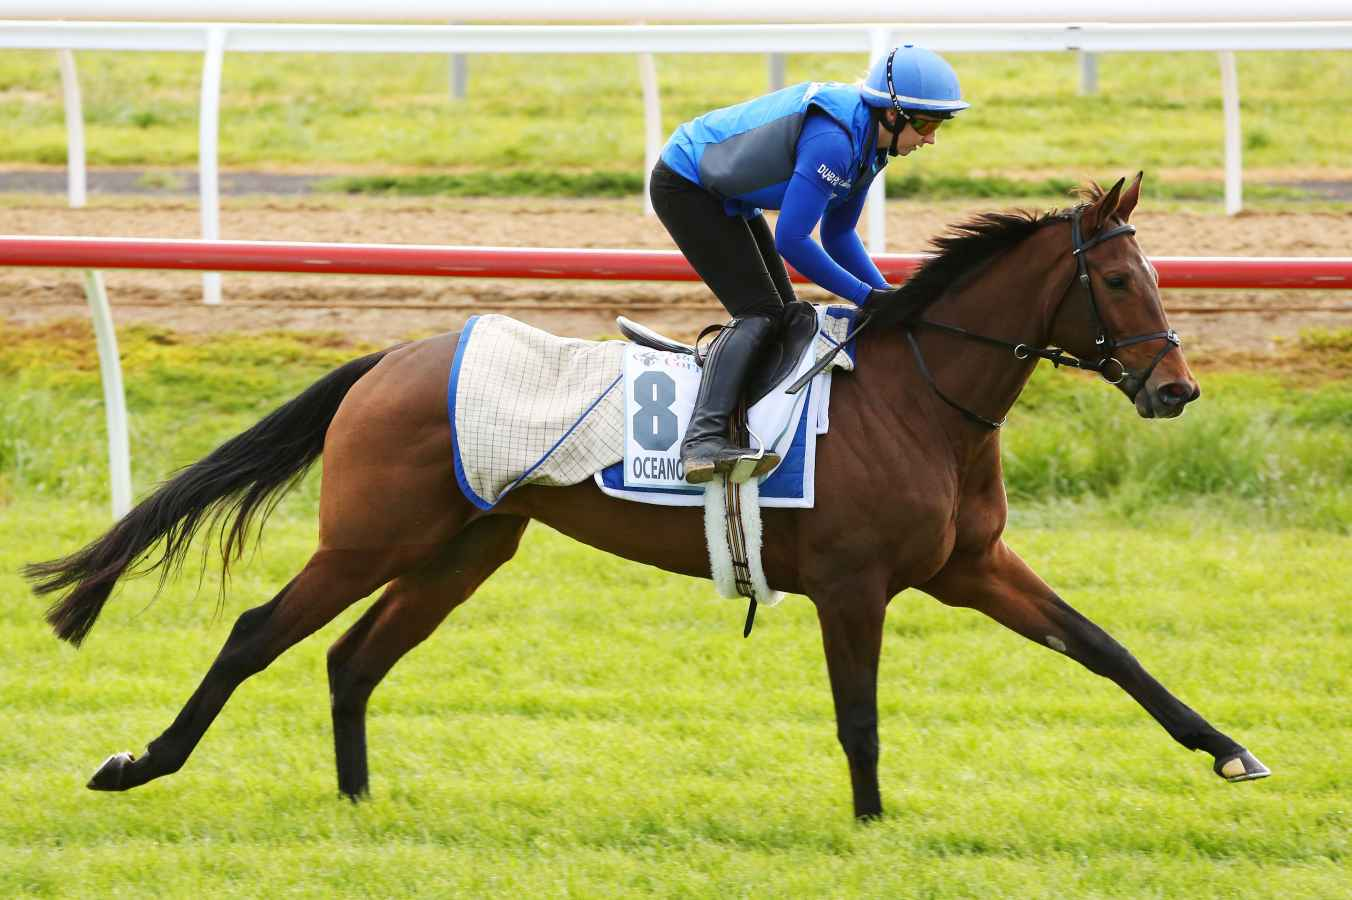 oceanographer-is-among-the-nominations-for-the-lexus-stakes-1477377980_1352x900